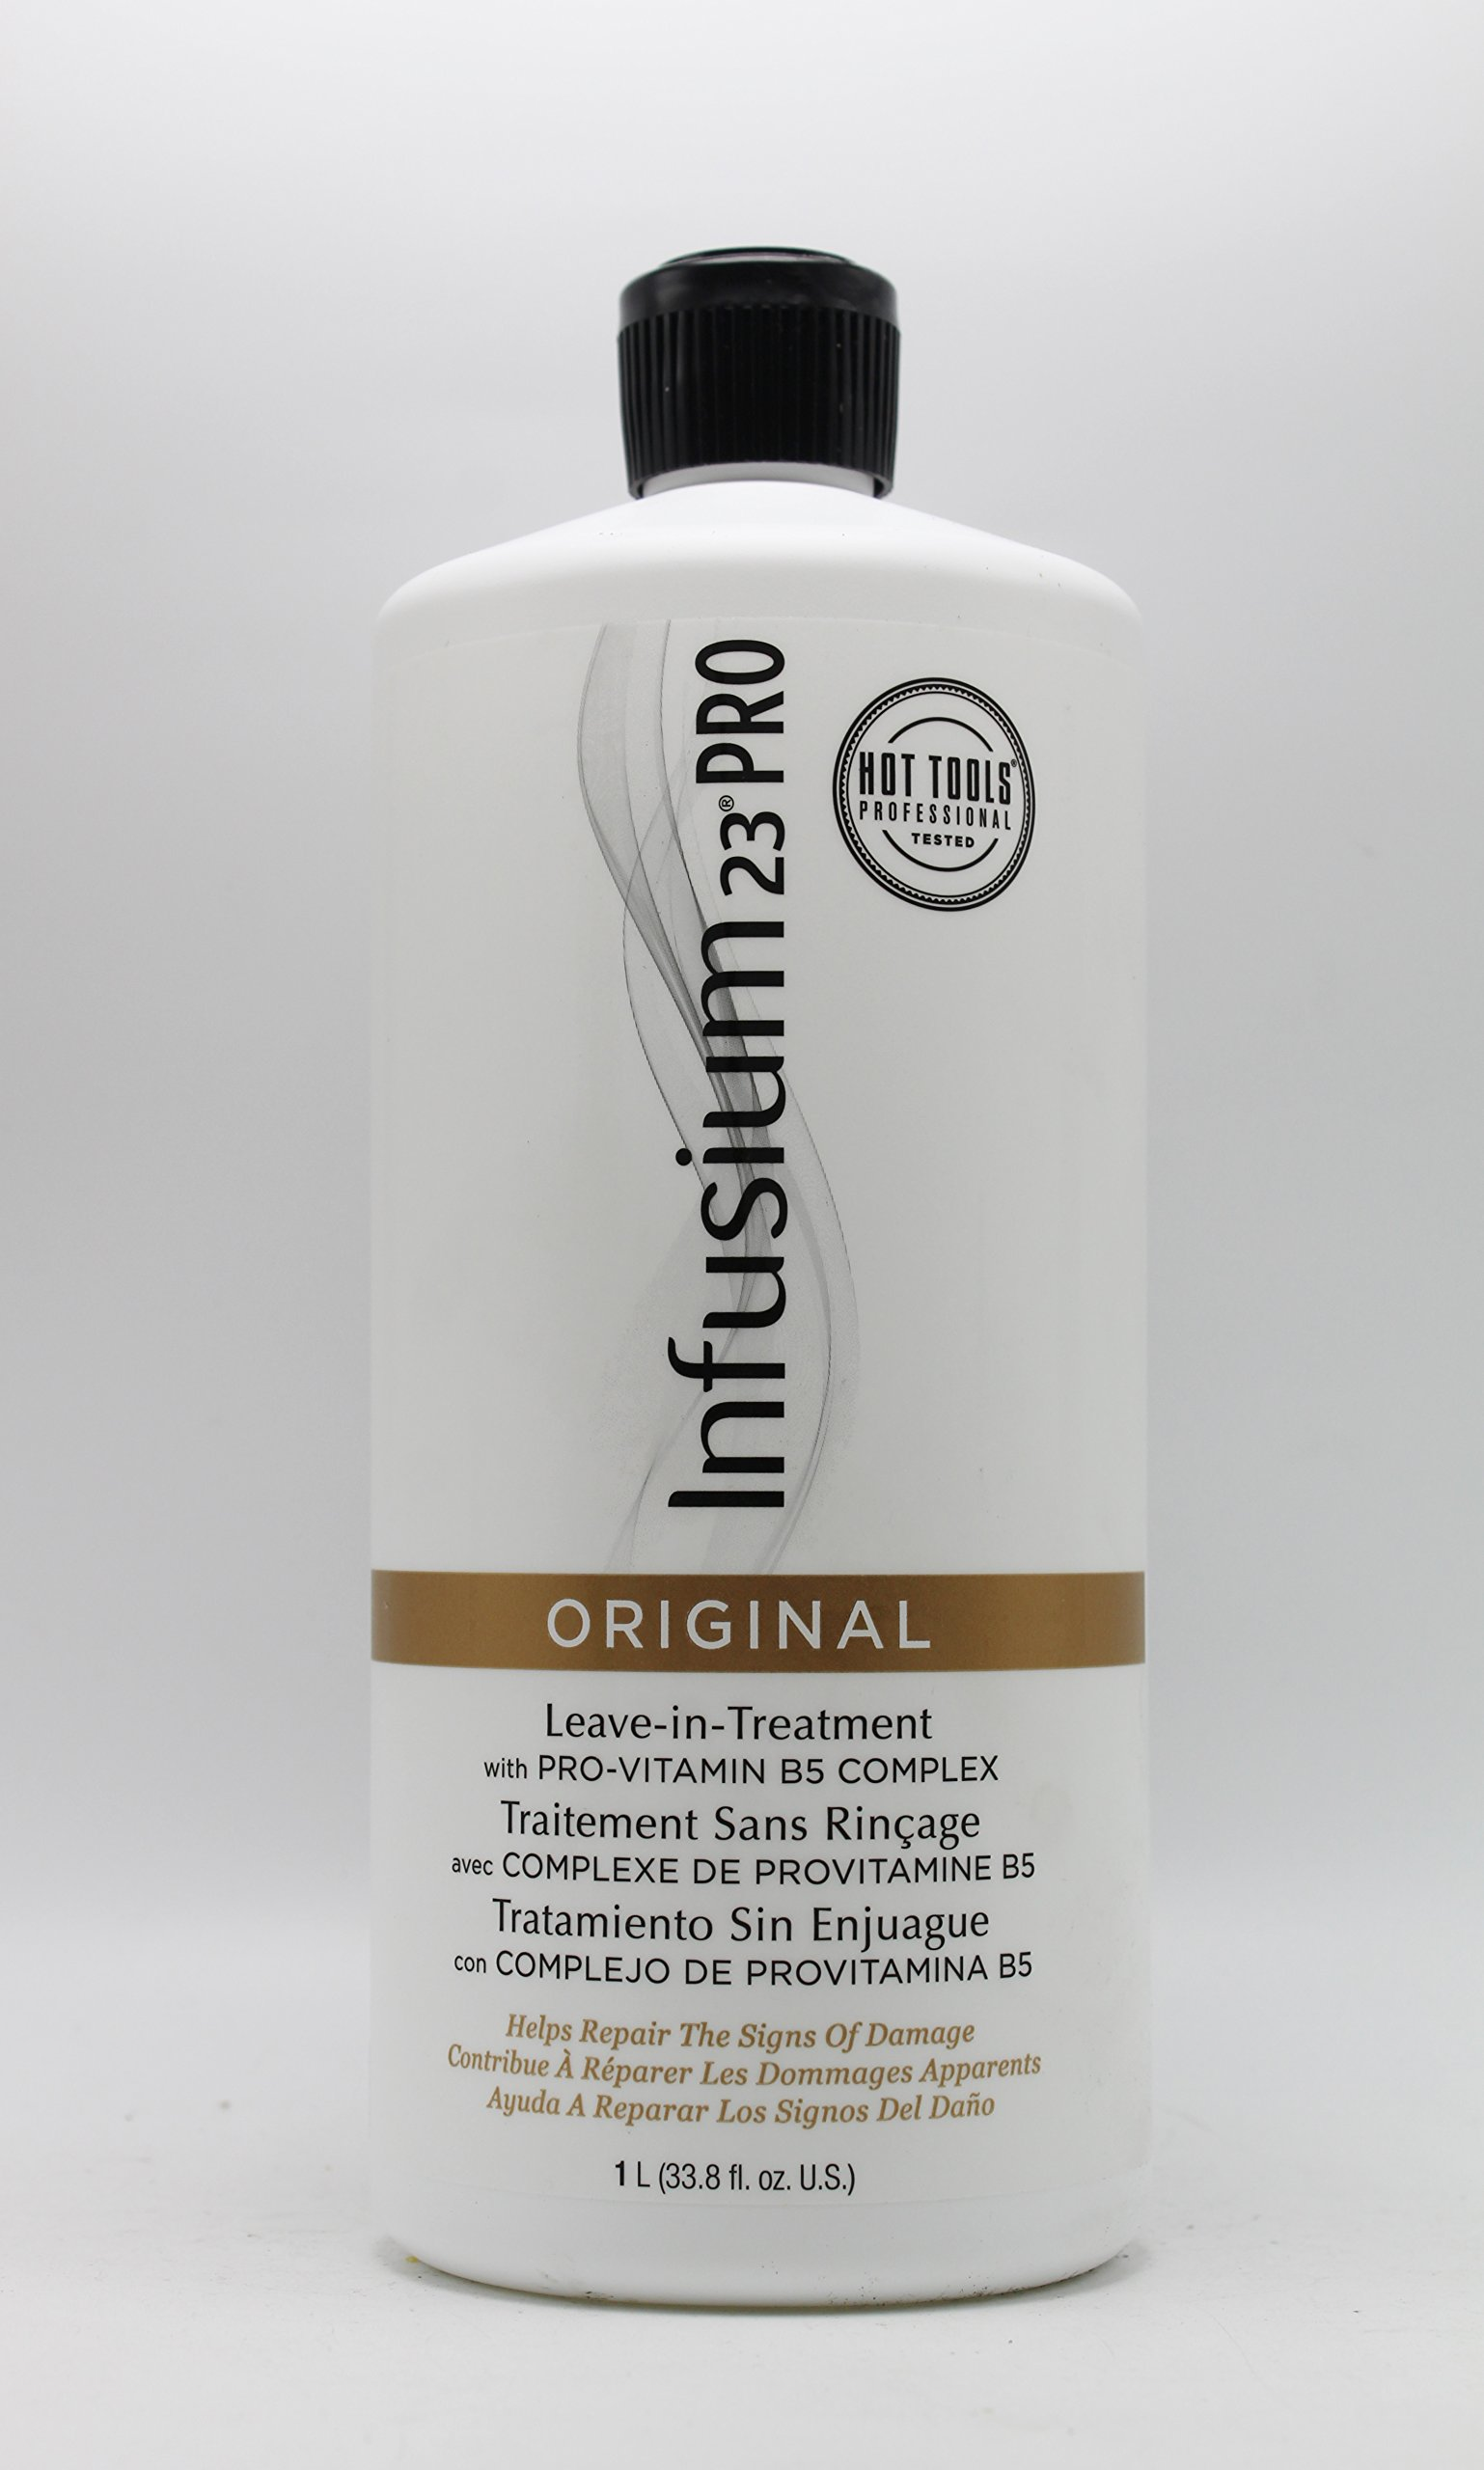 INFUSIUM 23 Orginal Formula Pro-Vitamin Leave-In Hair Treatment 33.8 oz by InfusiumPro23